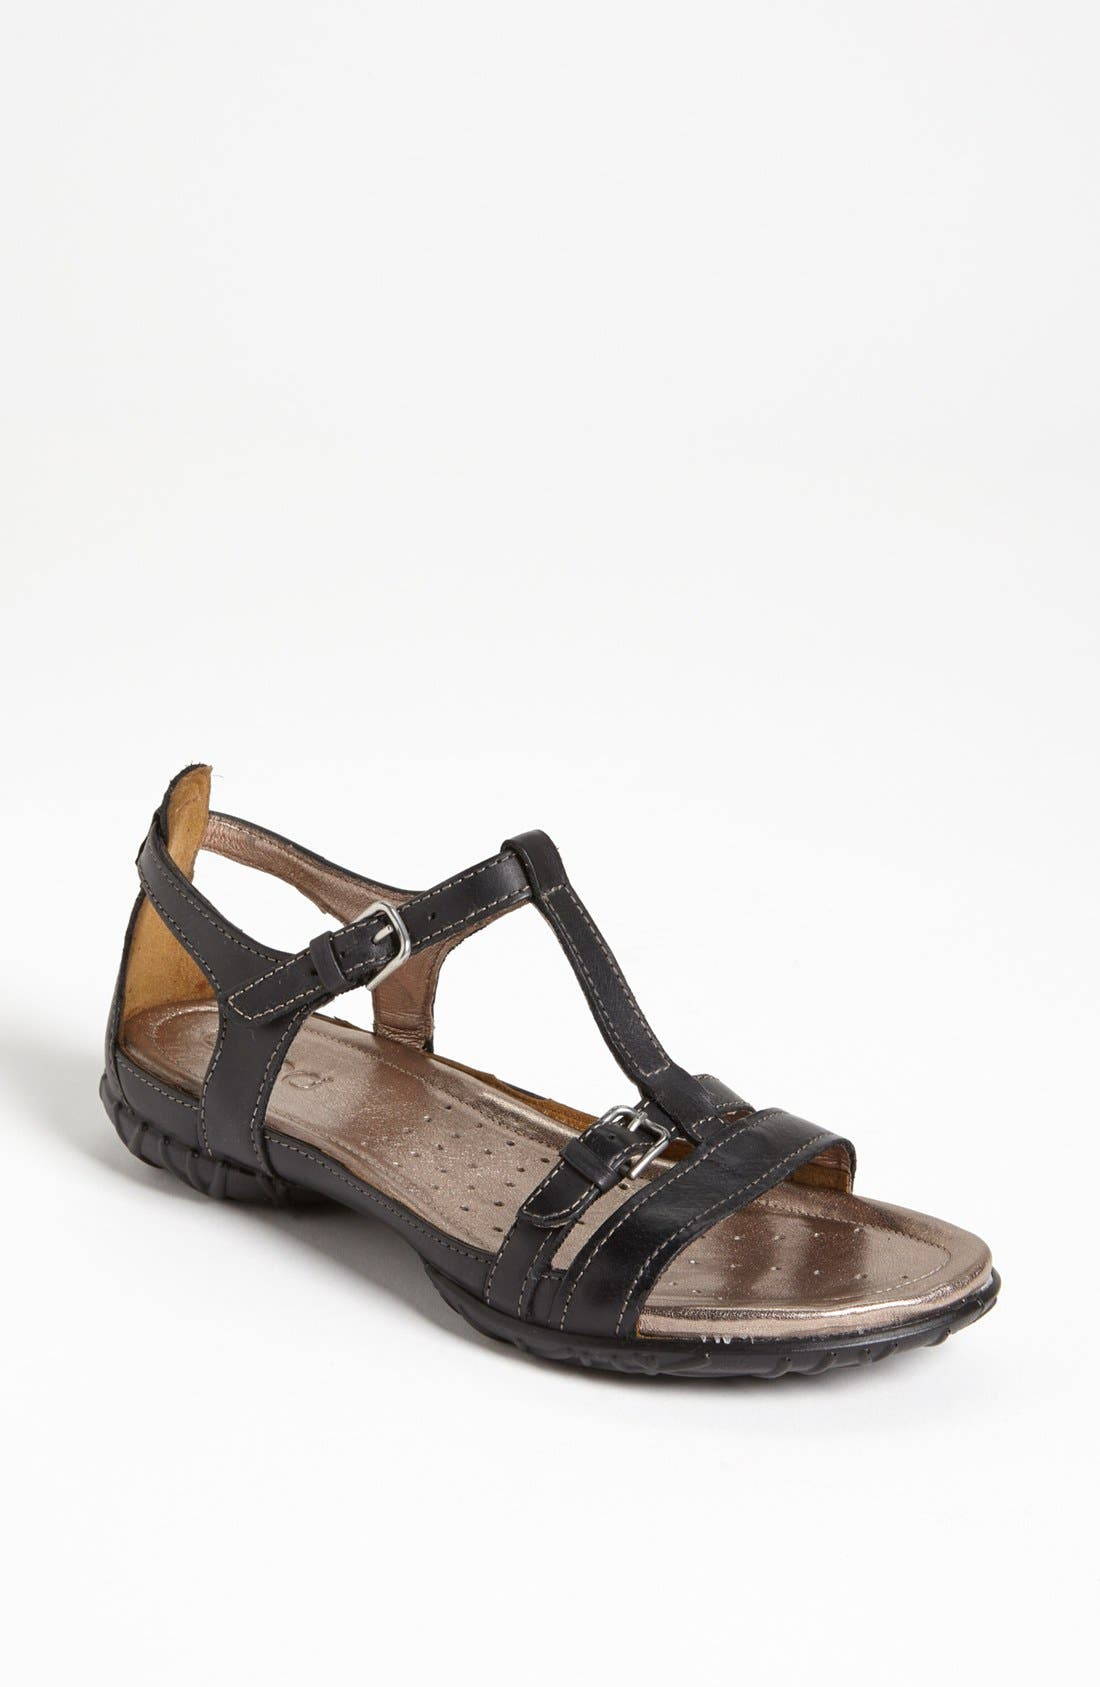 Main Image - ECCO 'Groove' Sandal (Special Purchase)